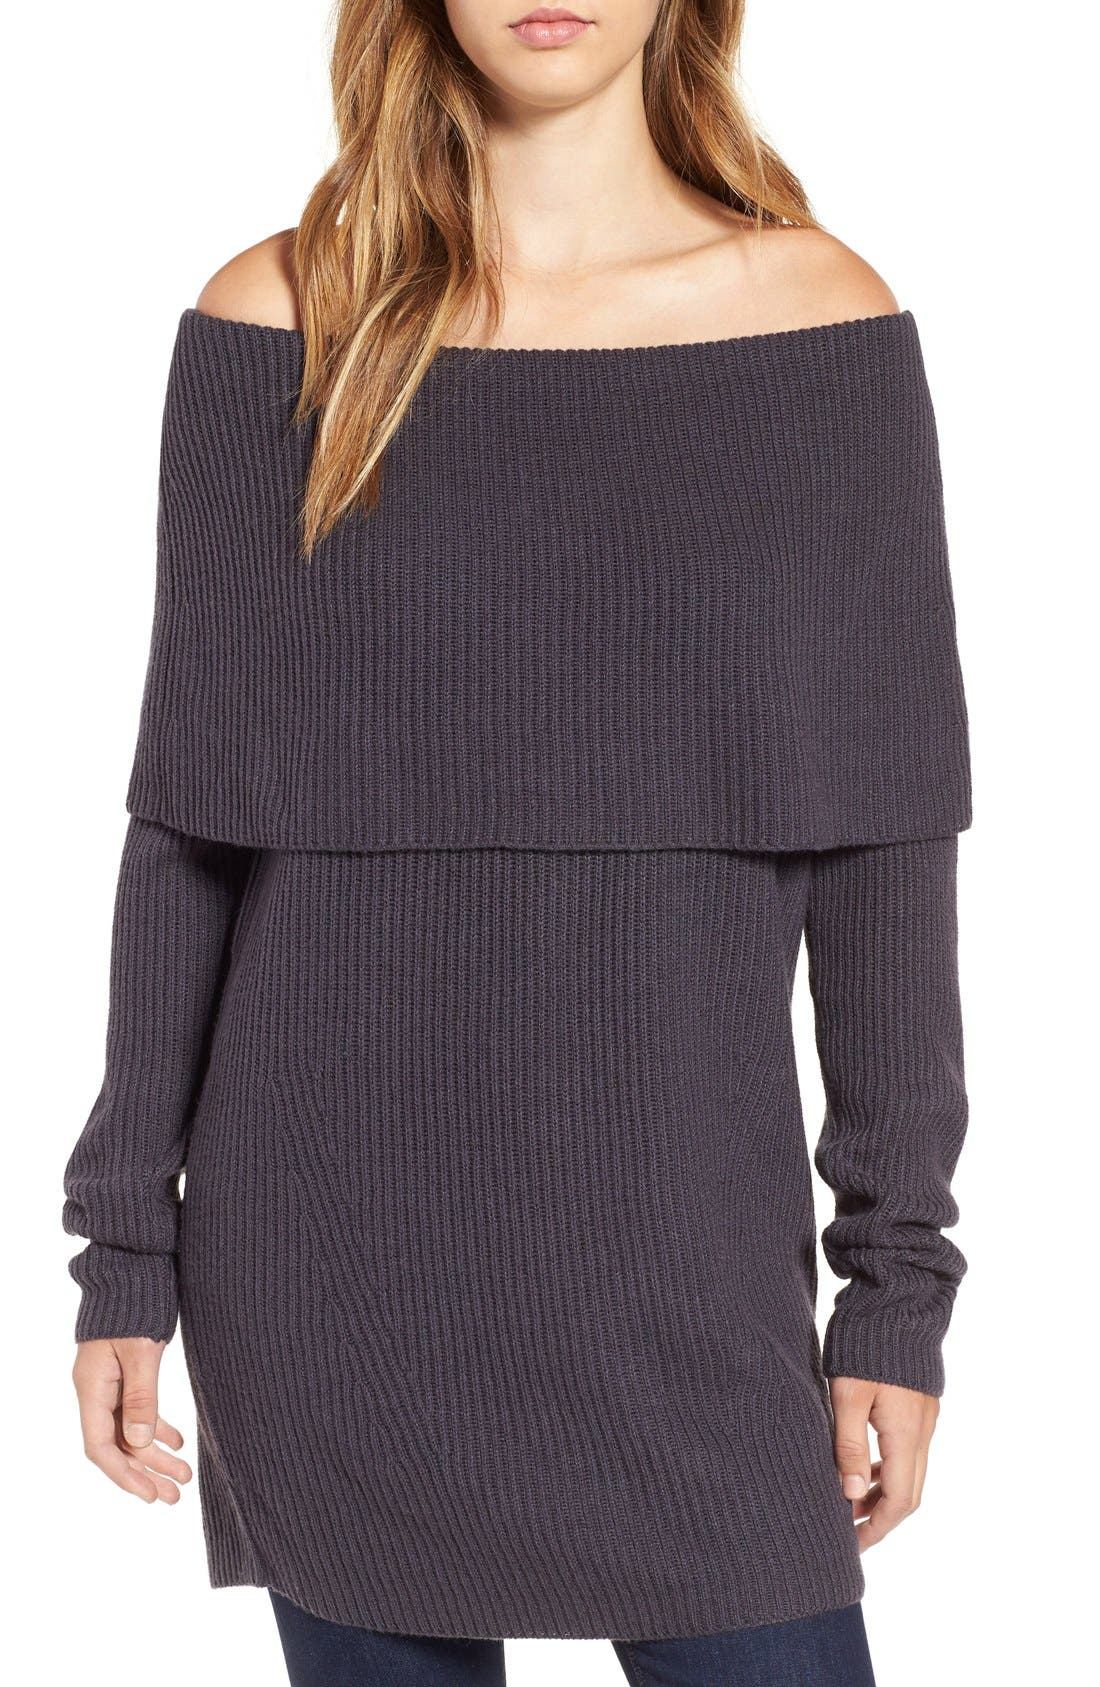 LEITH Off the Shoulder Knit Sweater, Main, color, 021